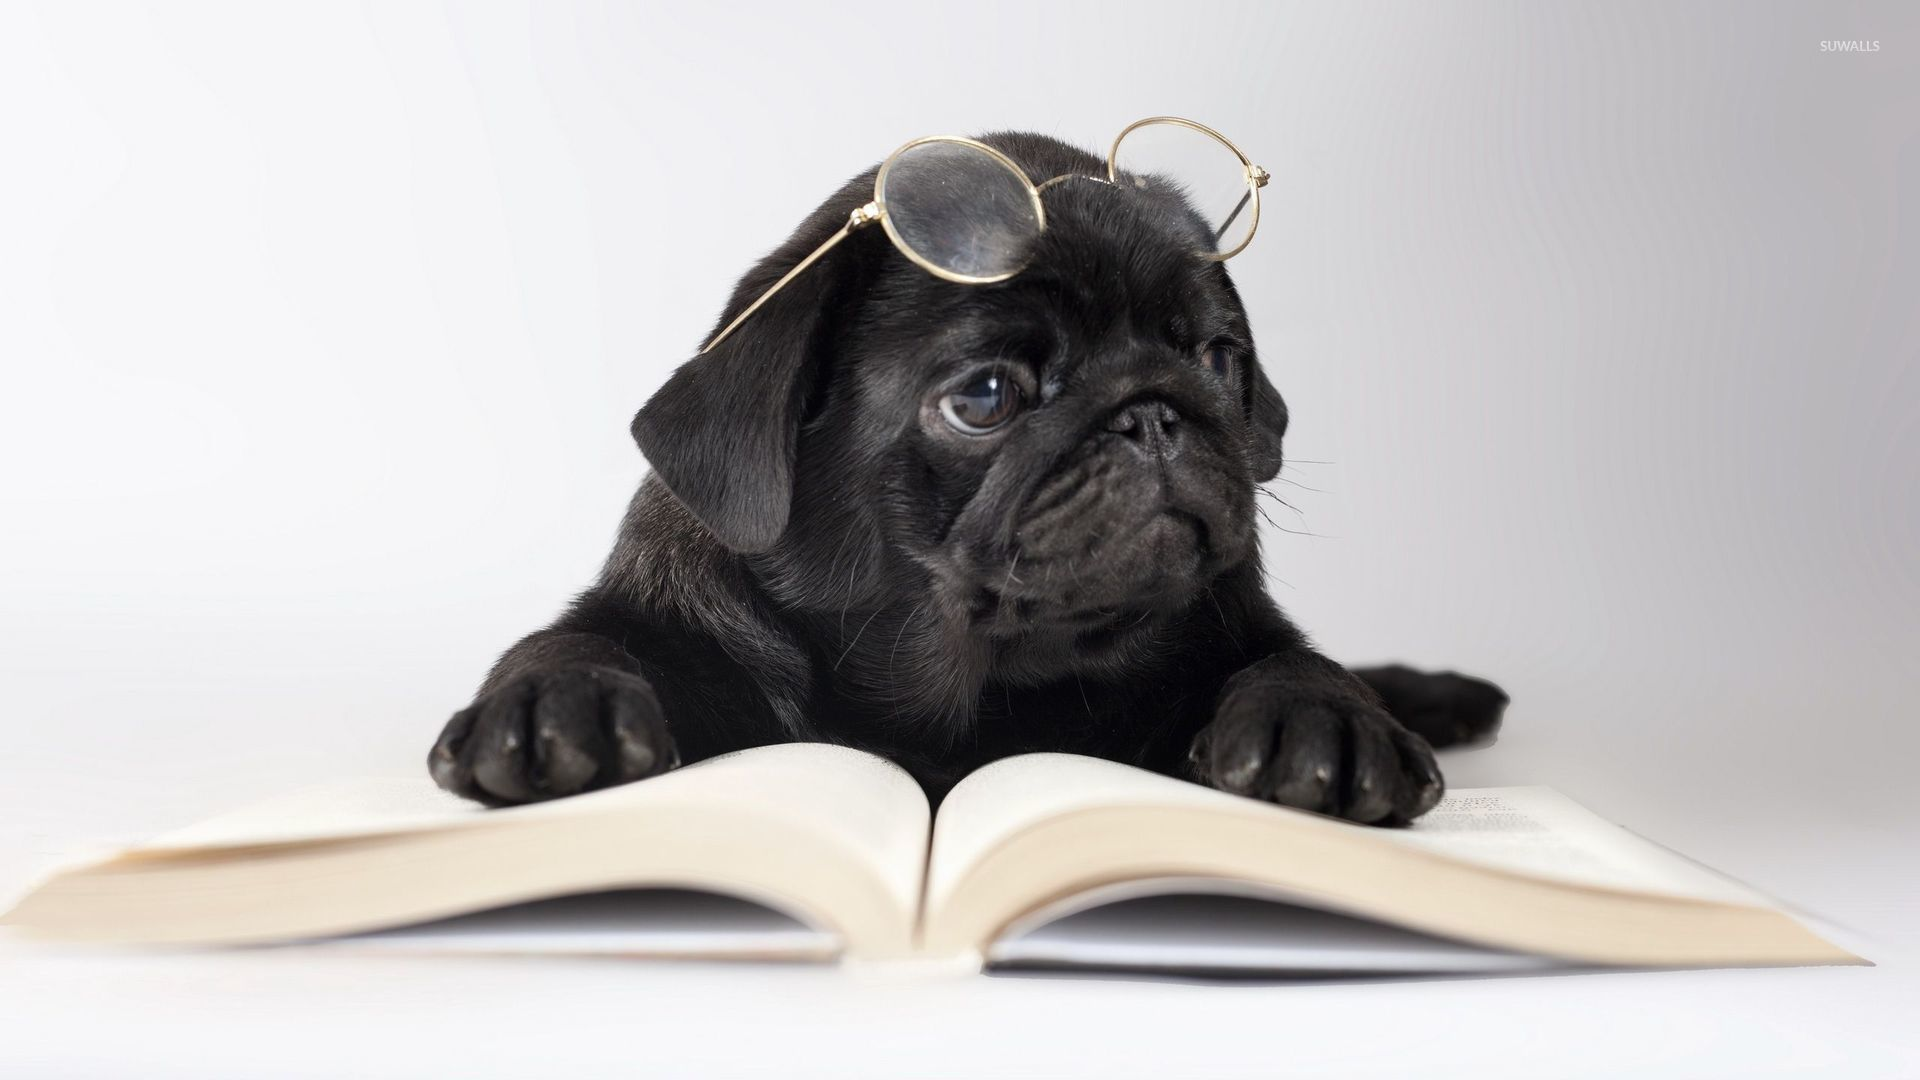 Cute Puppies Wallpaper Backgrounds Black Pug With Glasses Wallpaper Animal Wallpapers 50637